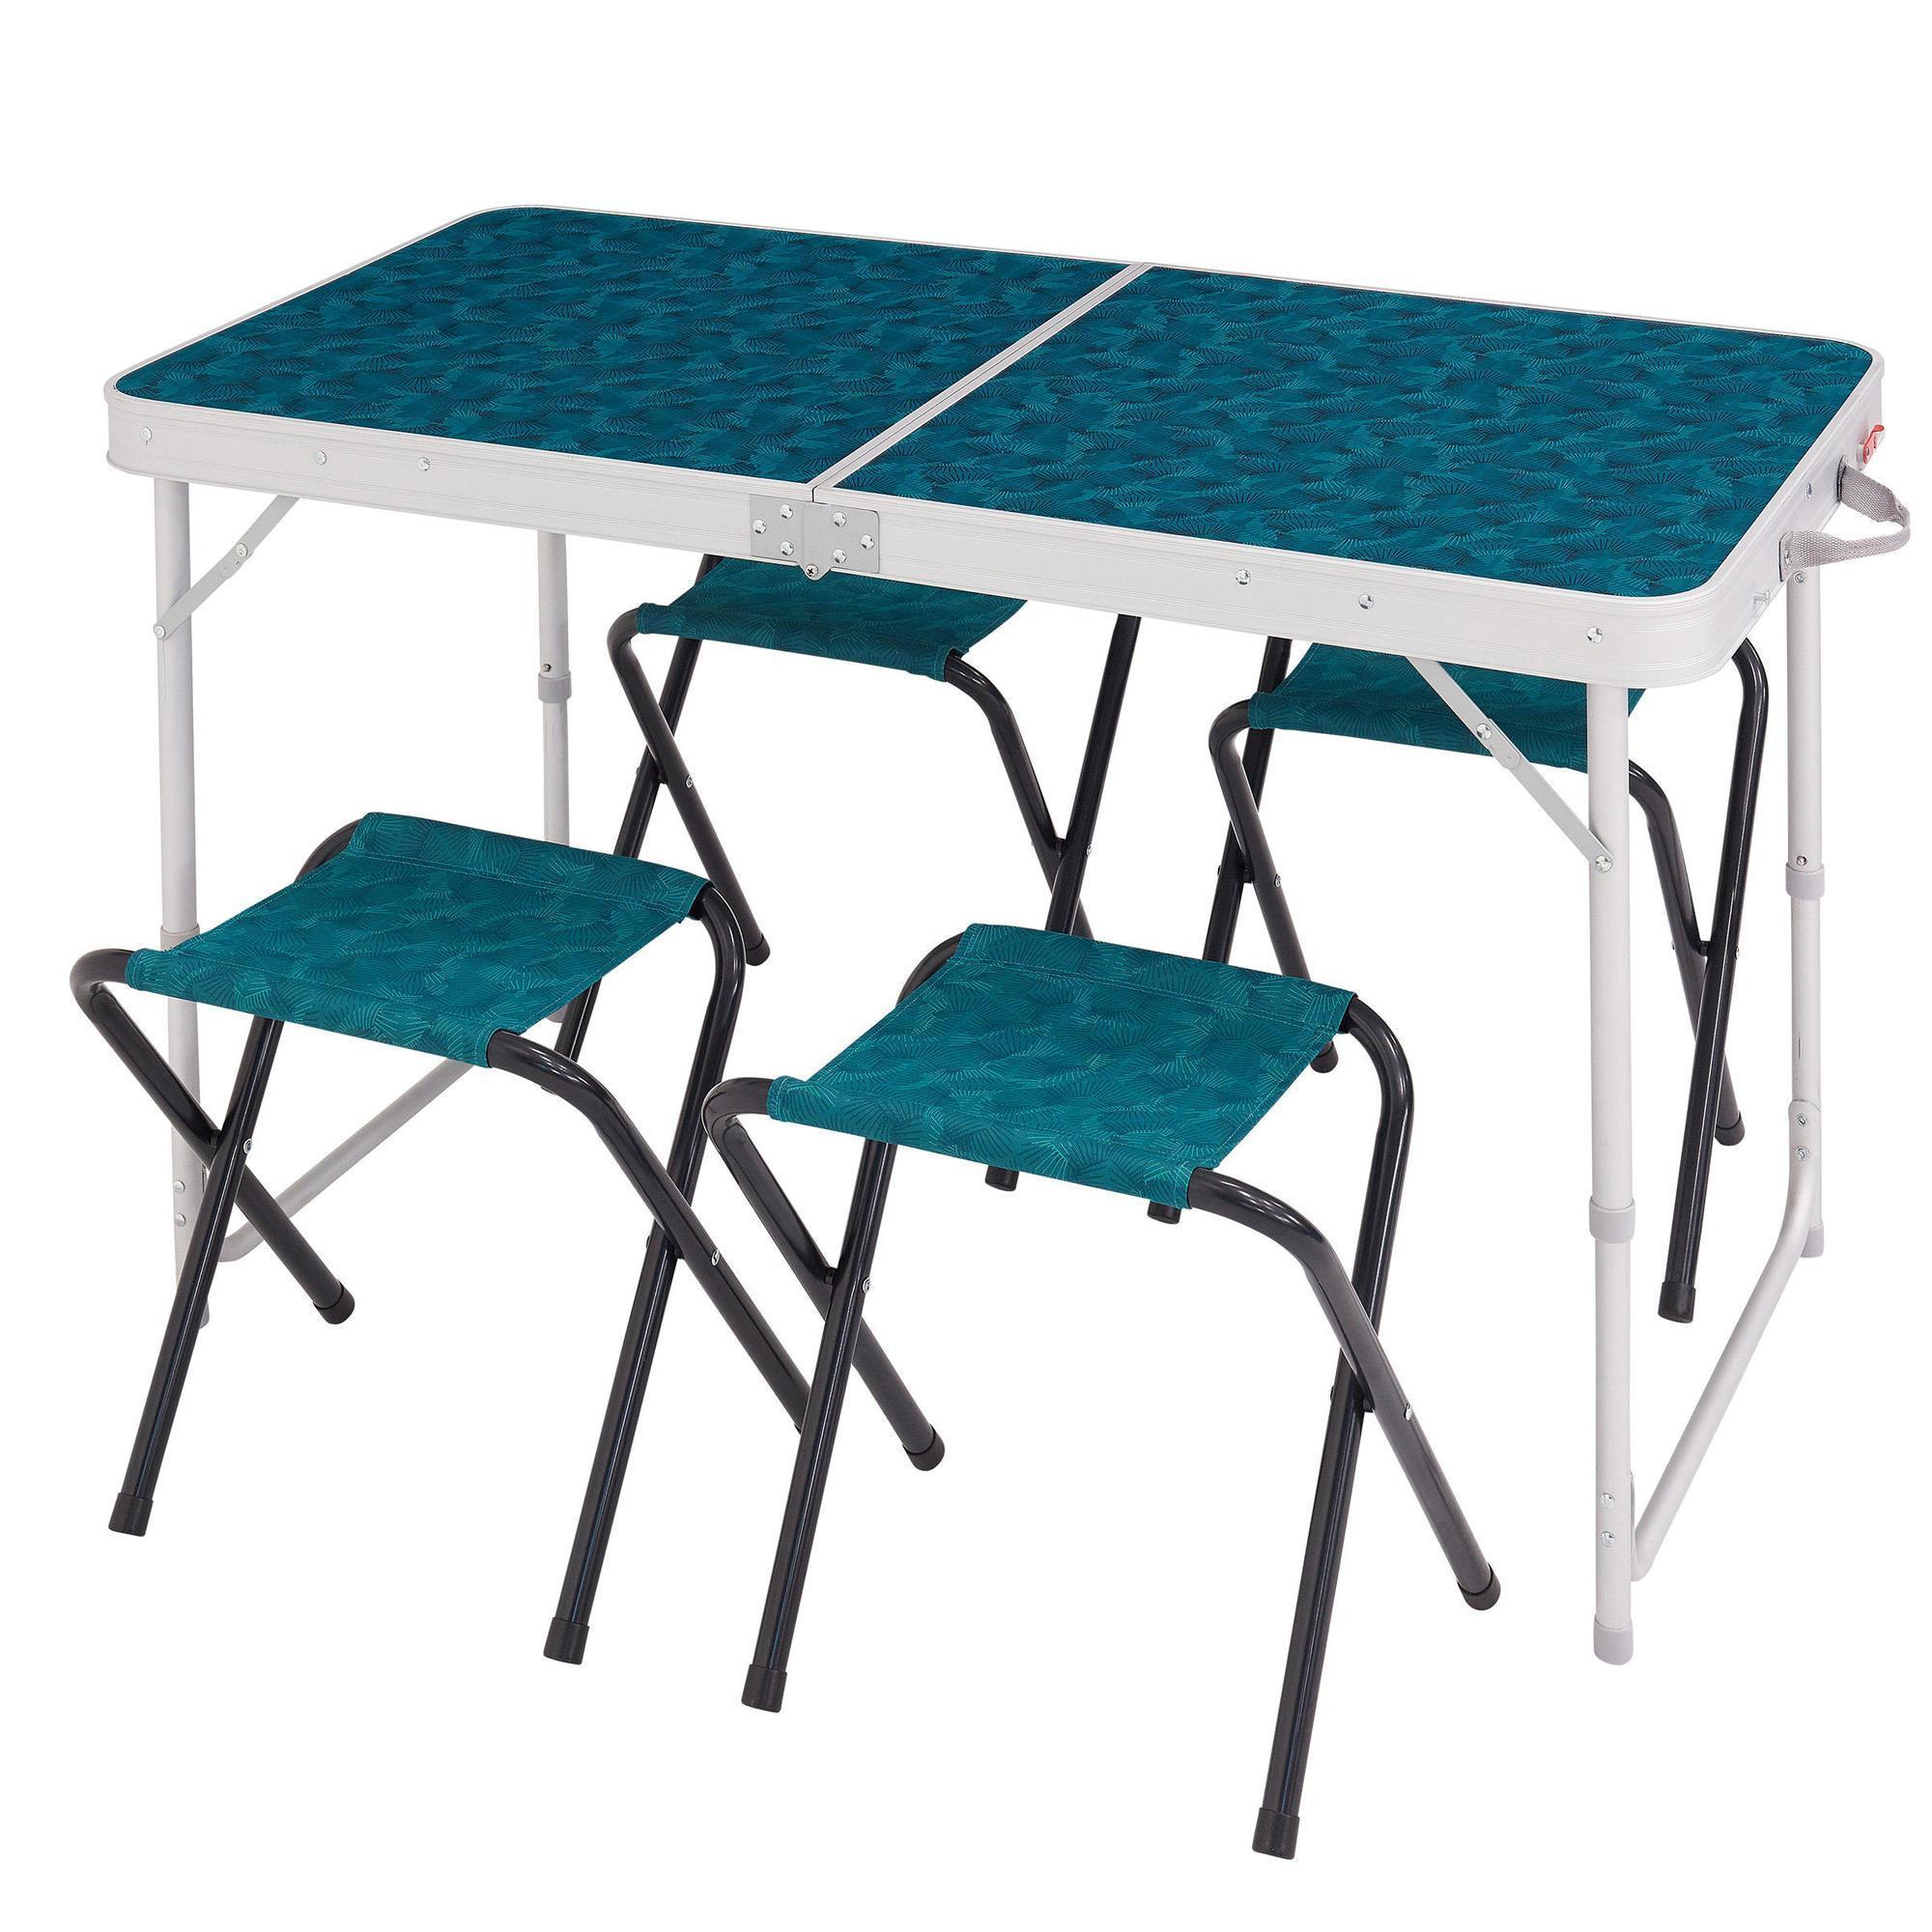 Folding camp table and chairs - Folding Table 4 Pers 4 Seats